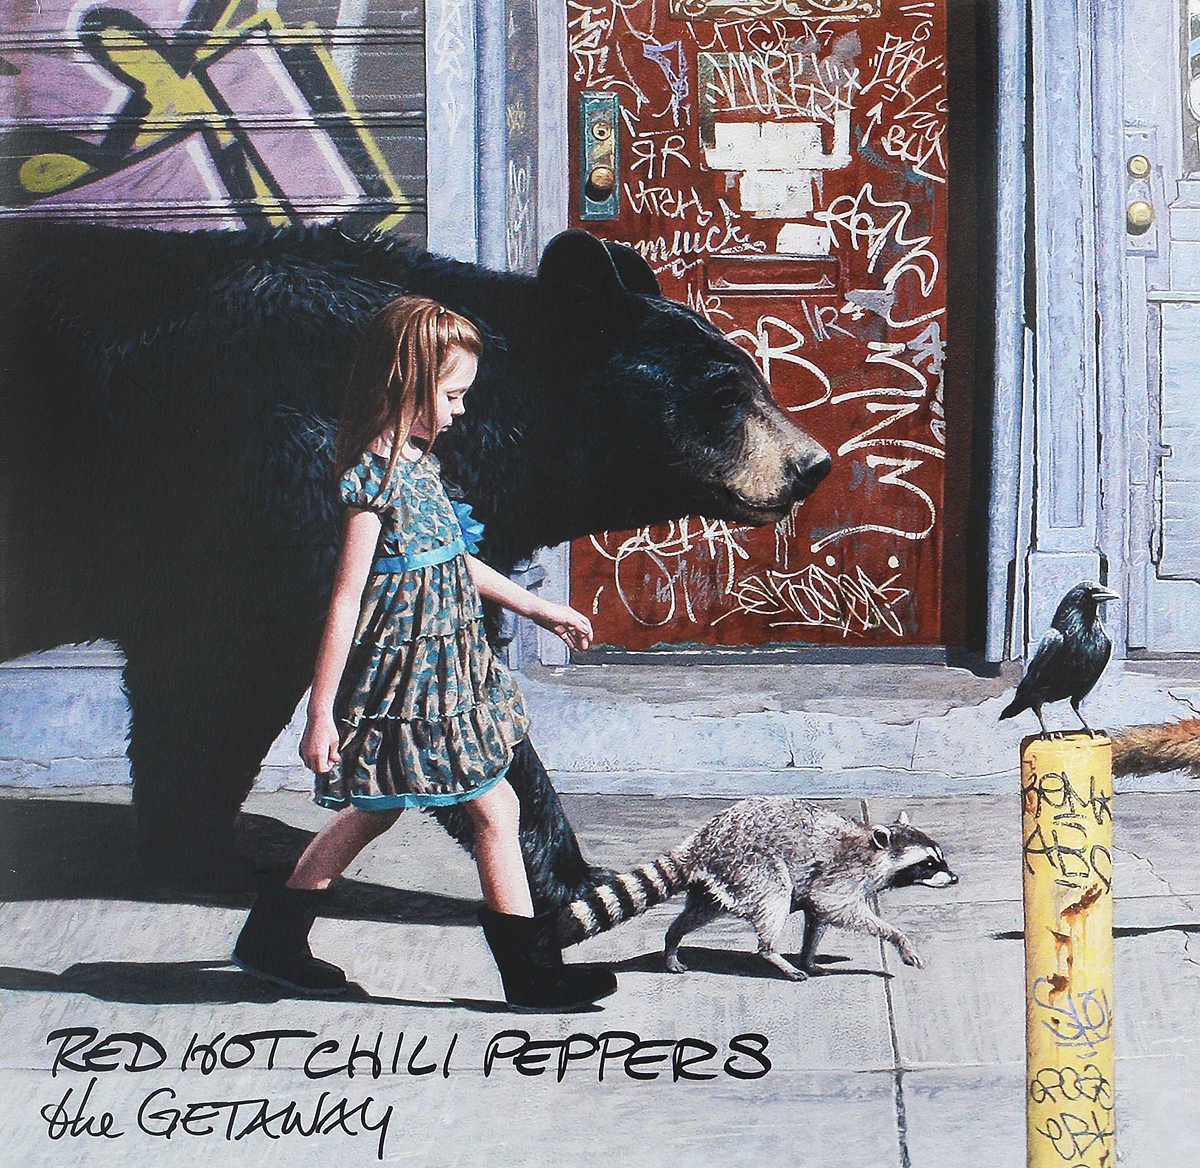 The Red Hot Chili Peppers Red Hot Chili Peppers. The Getaway (2 LP) the red hot chili peppers red hot chili peppers by the way 2 lp